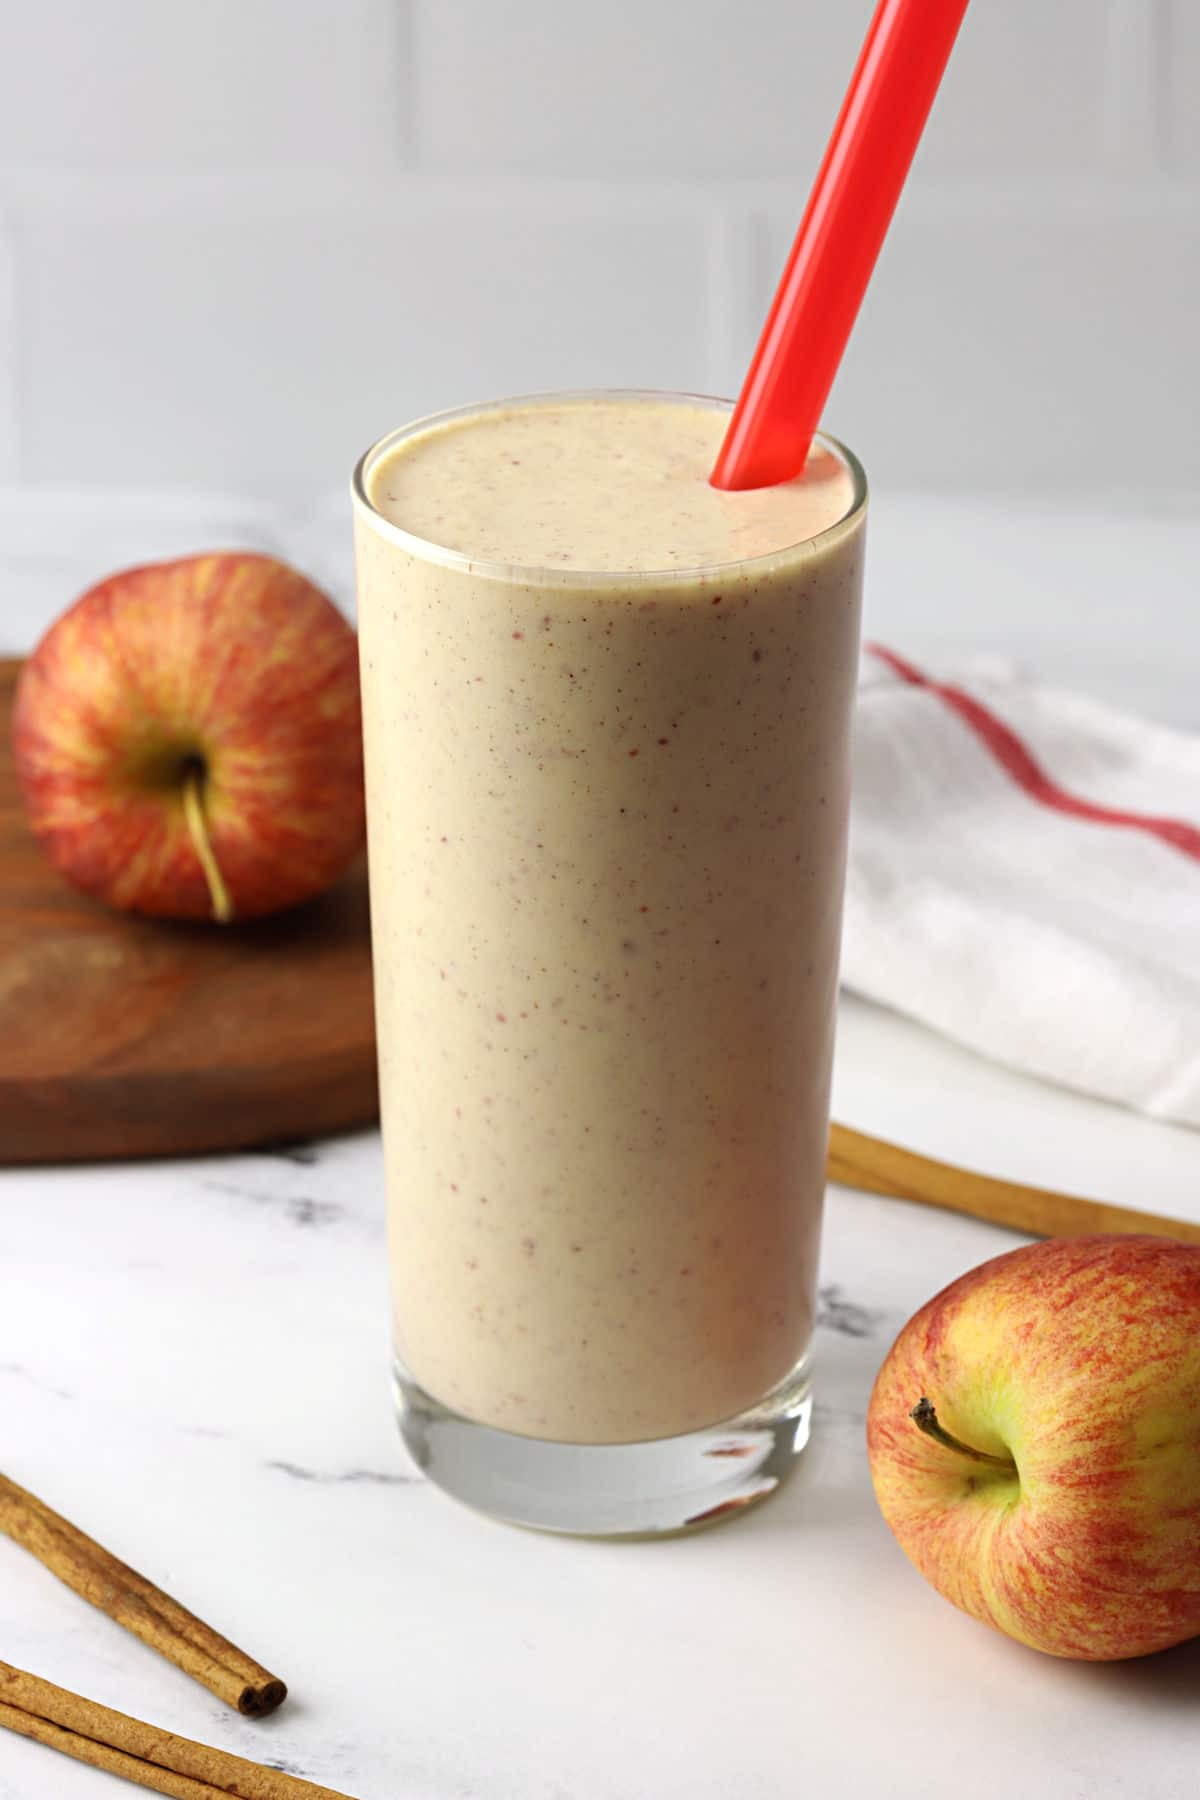 A tall glass filled with apple smoothie and a red straw.